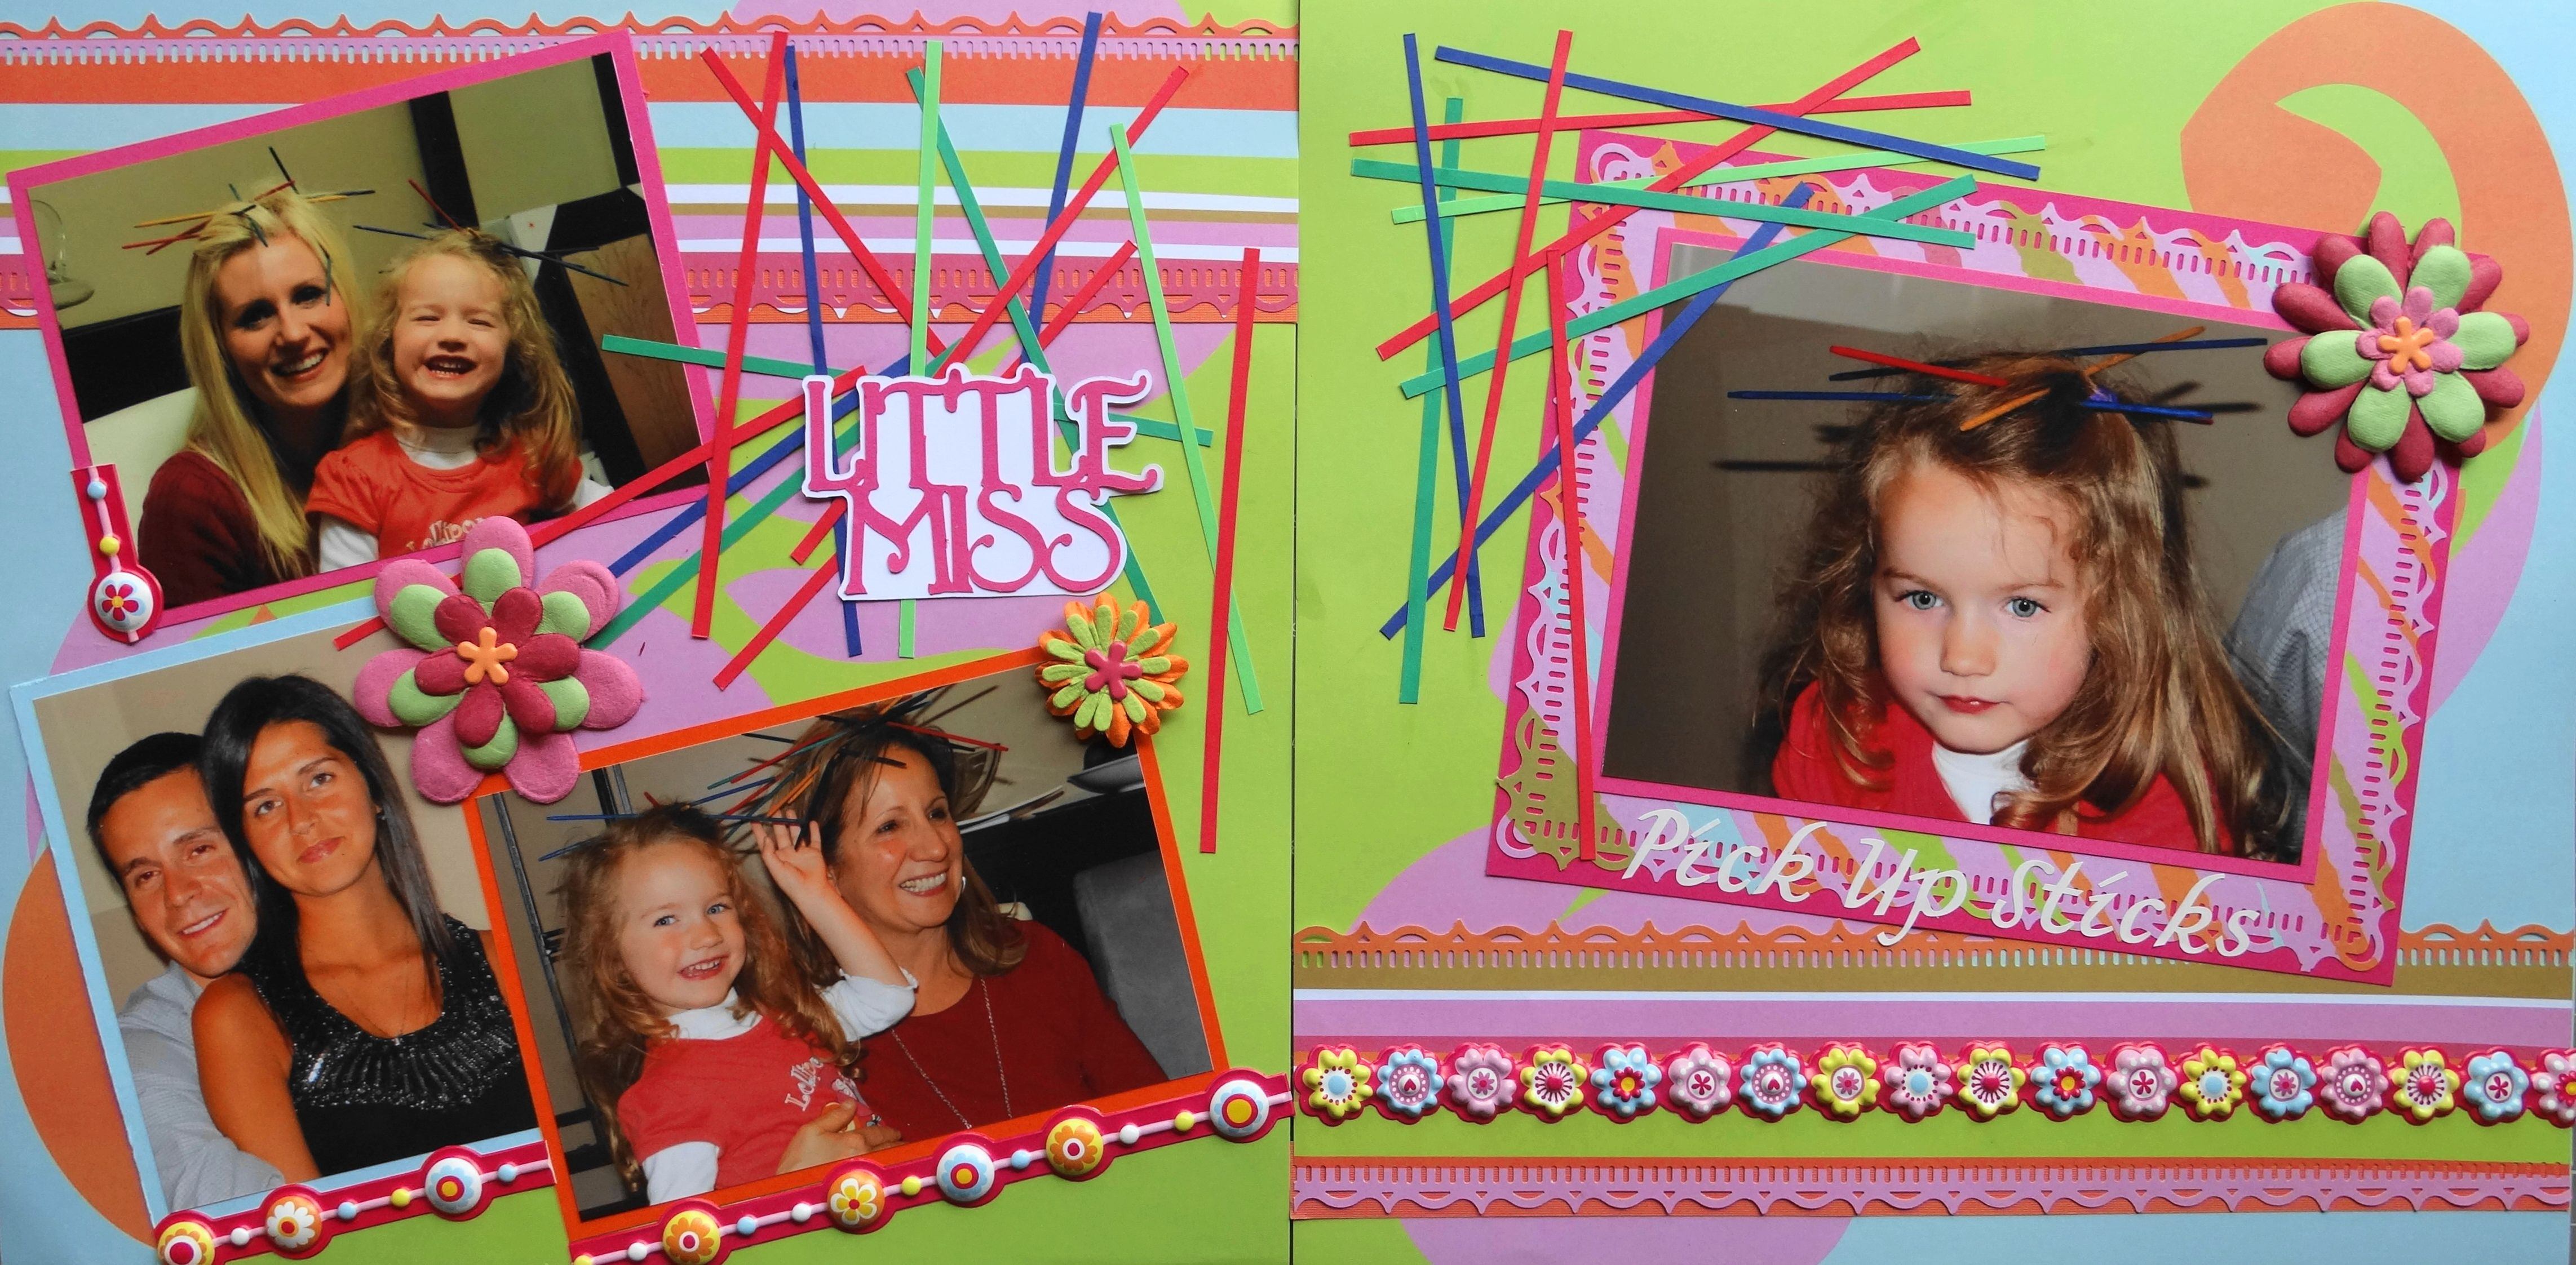 Family scrapbook ideas on pinterest - Scrapbook Page Little Miss Pick Up Sticks 2 Page Girl Layout From Everyday Life